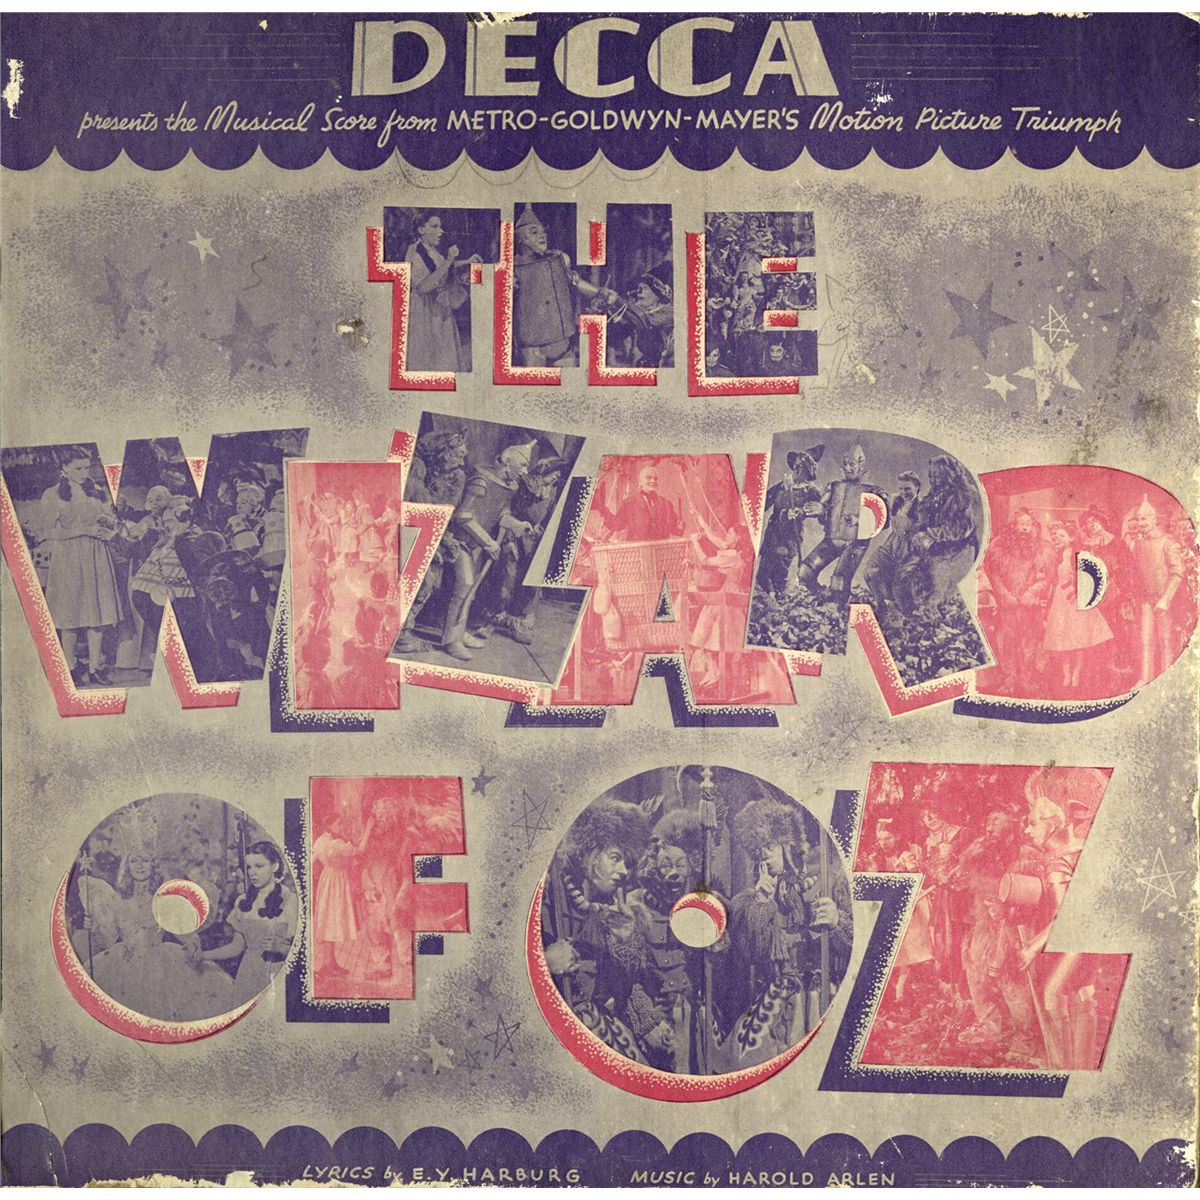 Judy Garland's personal copy of an original The Wizard of Oz Decca record  album set